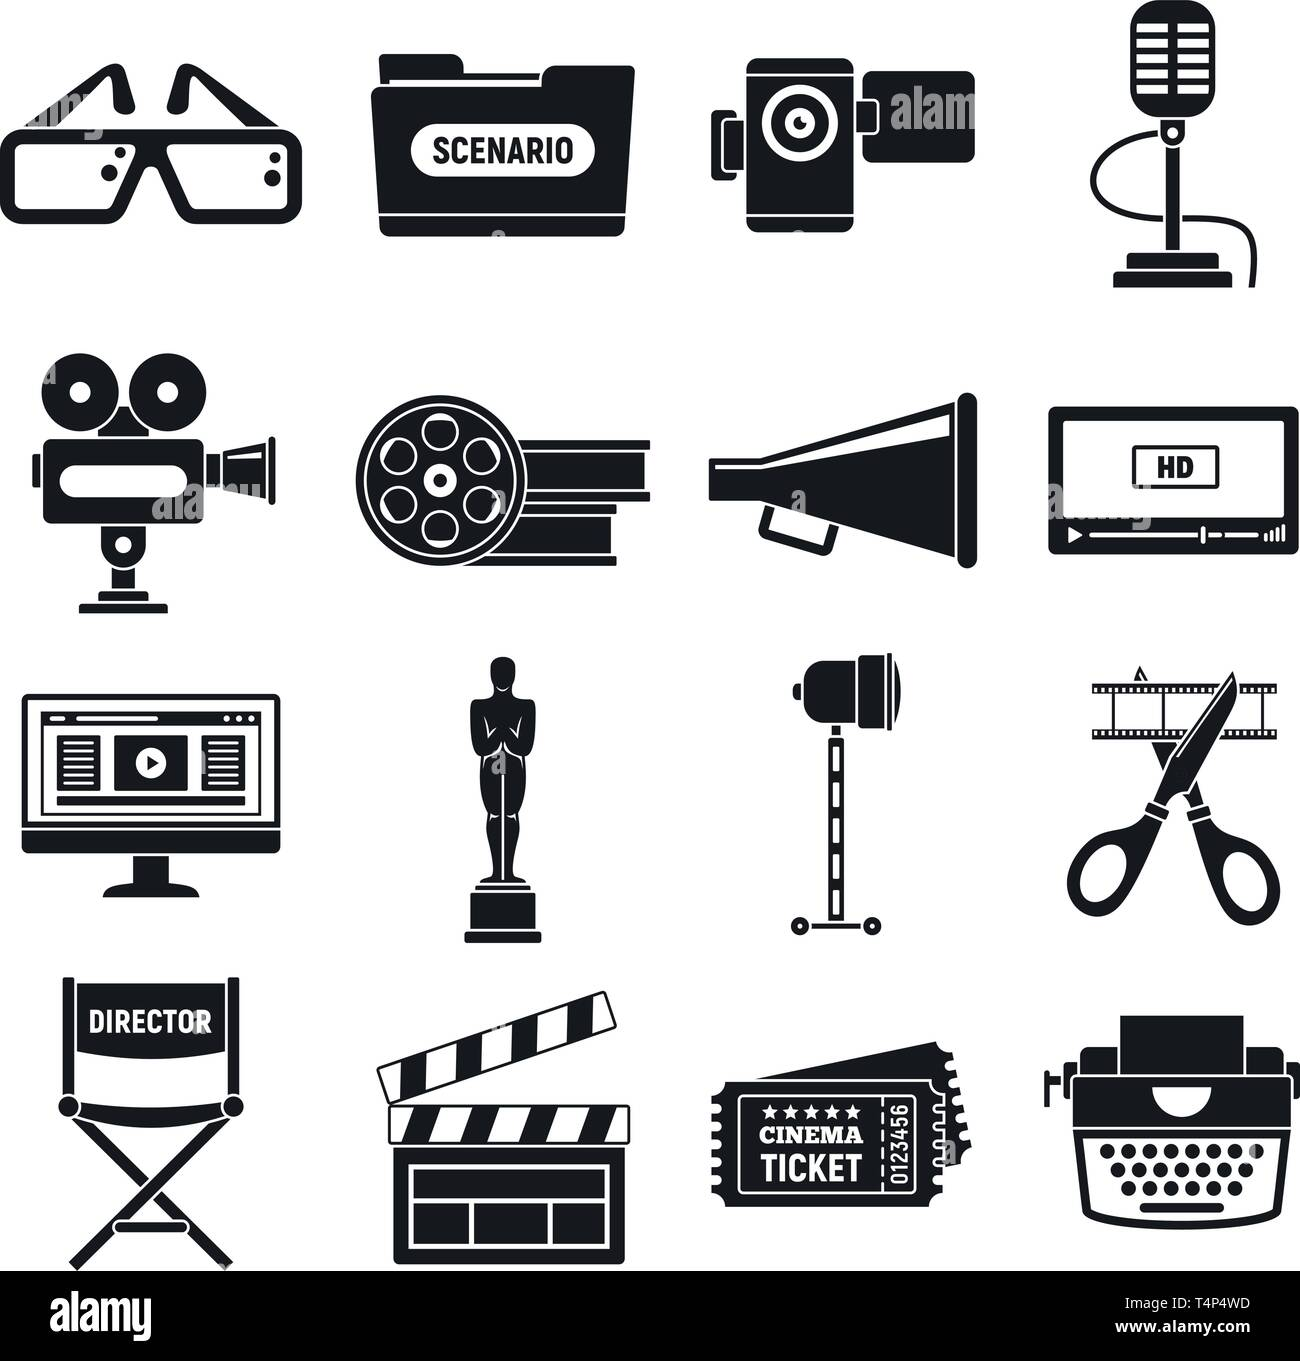 Video film production icons set. Simple set of video film production vector icons for web design on white background - Stock Image